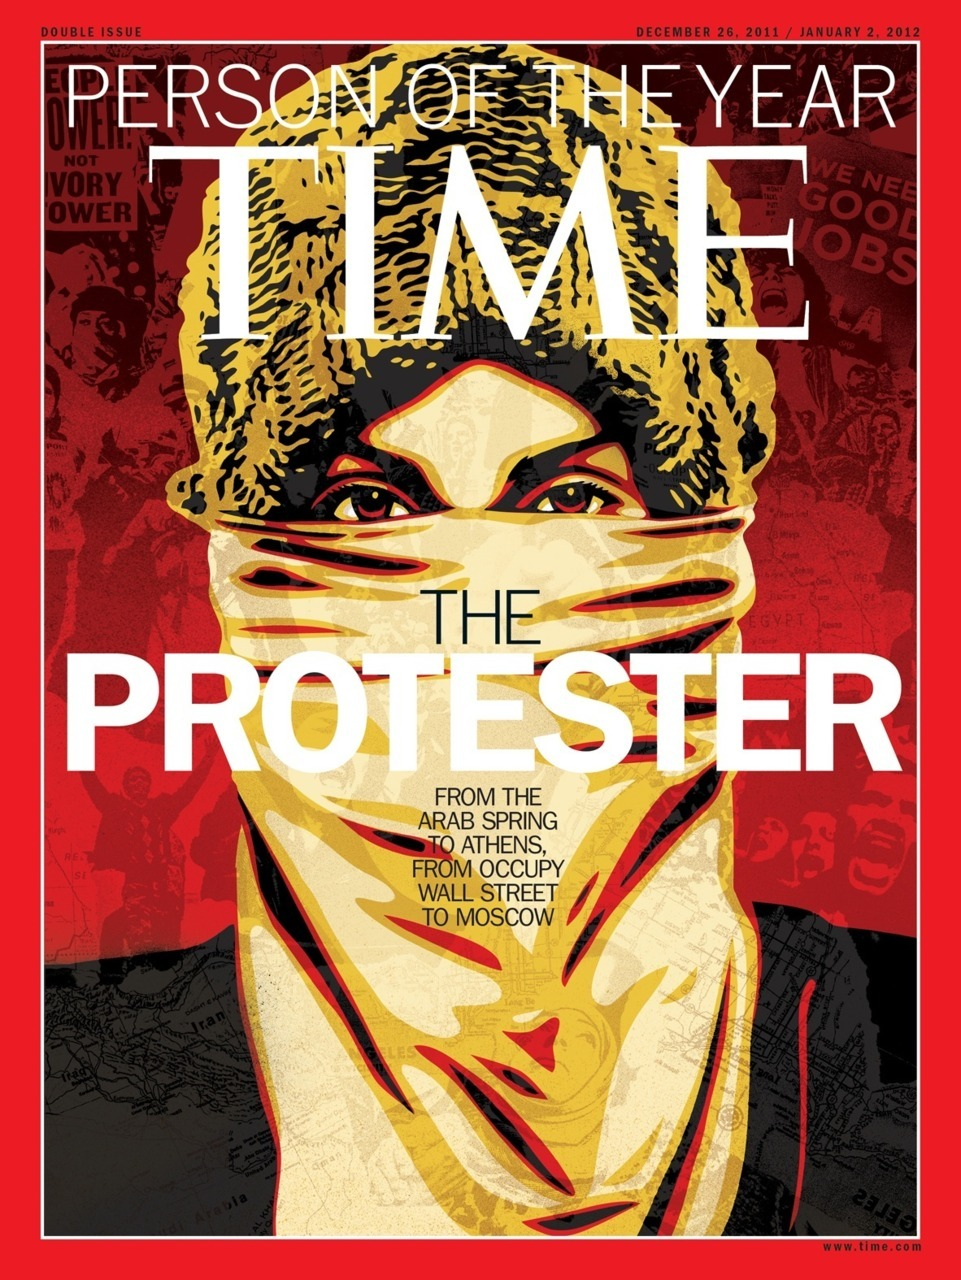 "Is ""Occupy Consumerism"" just around the corner?  poptech:  timemagazine:  TIME's 2011 Person of the Year is The Protester  ""As soon as you cross the line of fear it just happens,"" explained Shima'a Helmy (PopTech 2011) in detailing how she began protesting in Egypt and has become one of the country's youngest activists who led that country's uprising. Now a full-time human rights activist, Helmy joined filmmakers and friends Micah Garen and Marie-Helene Carlton onstage at PopTech to talk about their collaboration on an upcoming documentary film If. The film will explore what it's like being a young revolutionary through the eyes of four different Egyptian women (including Helmy), although as Garen states, their story is far from over."